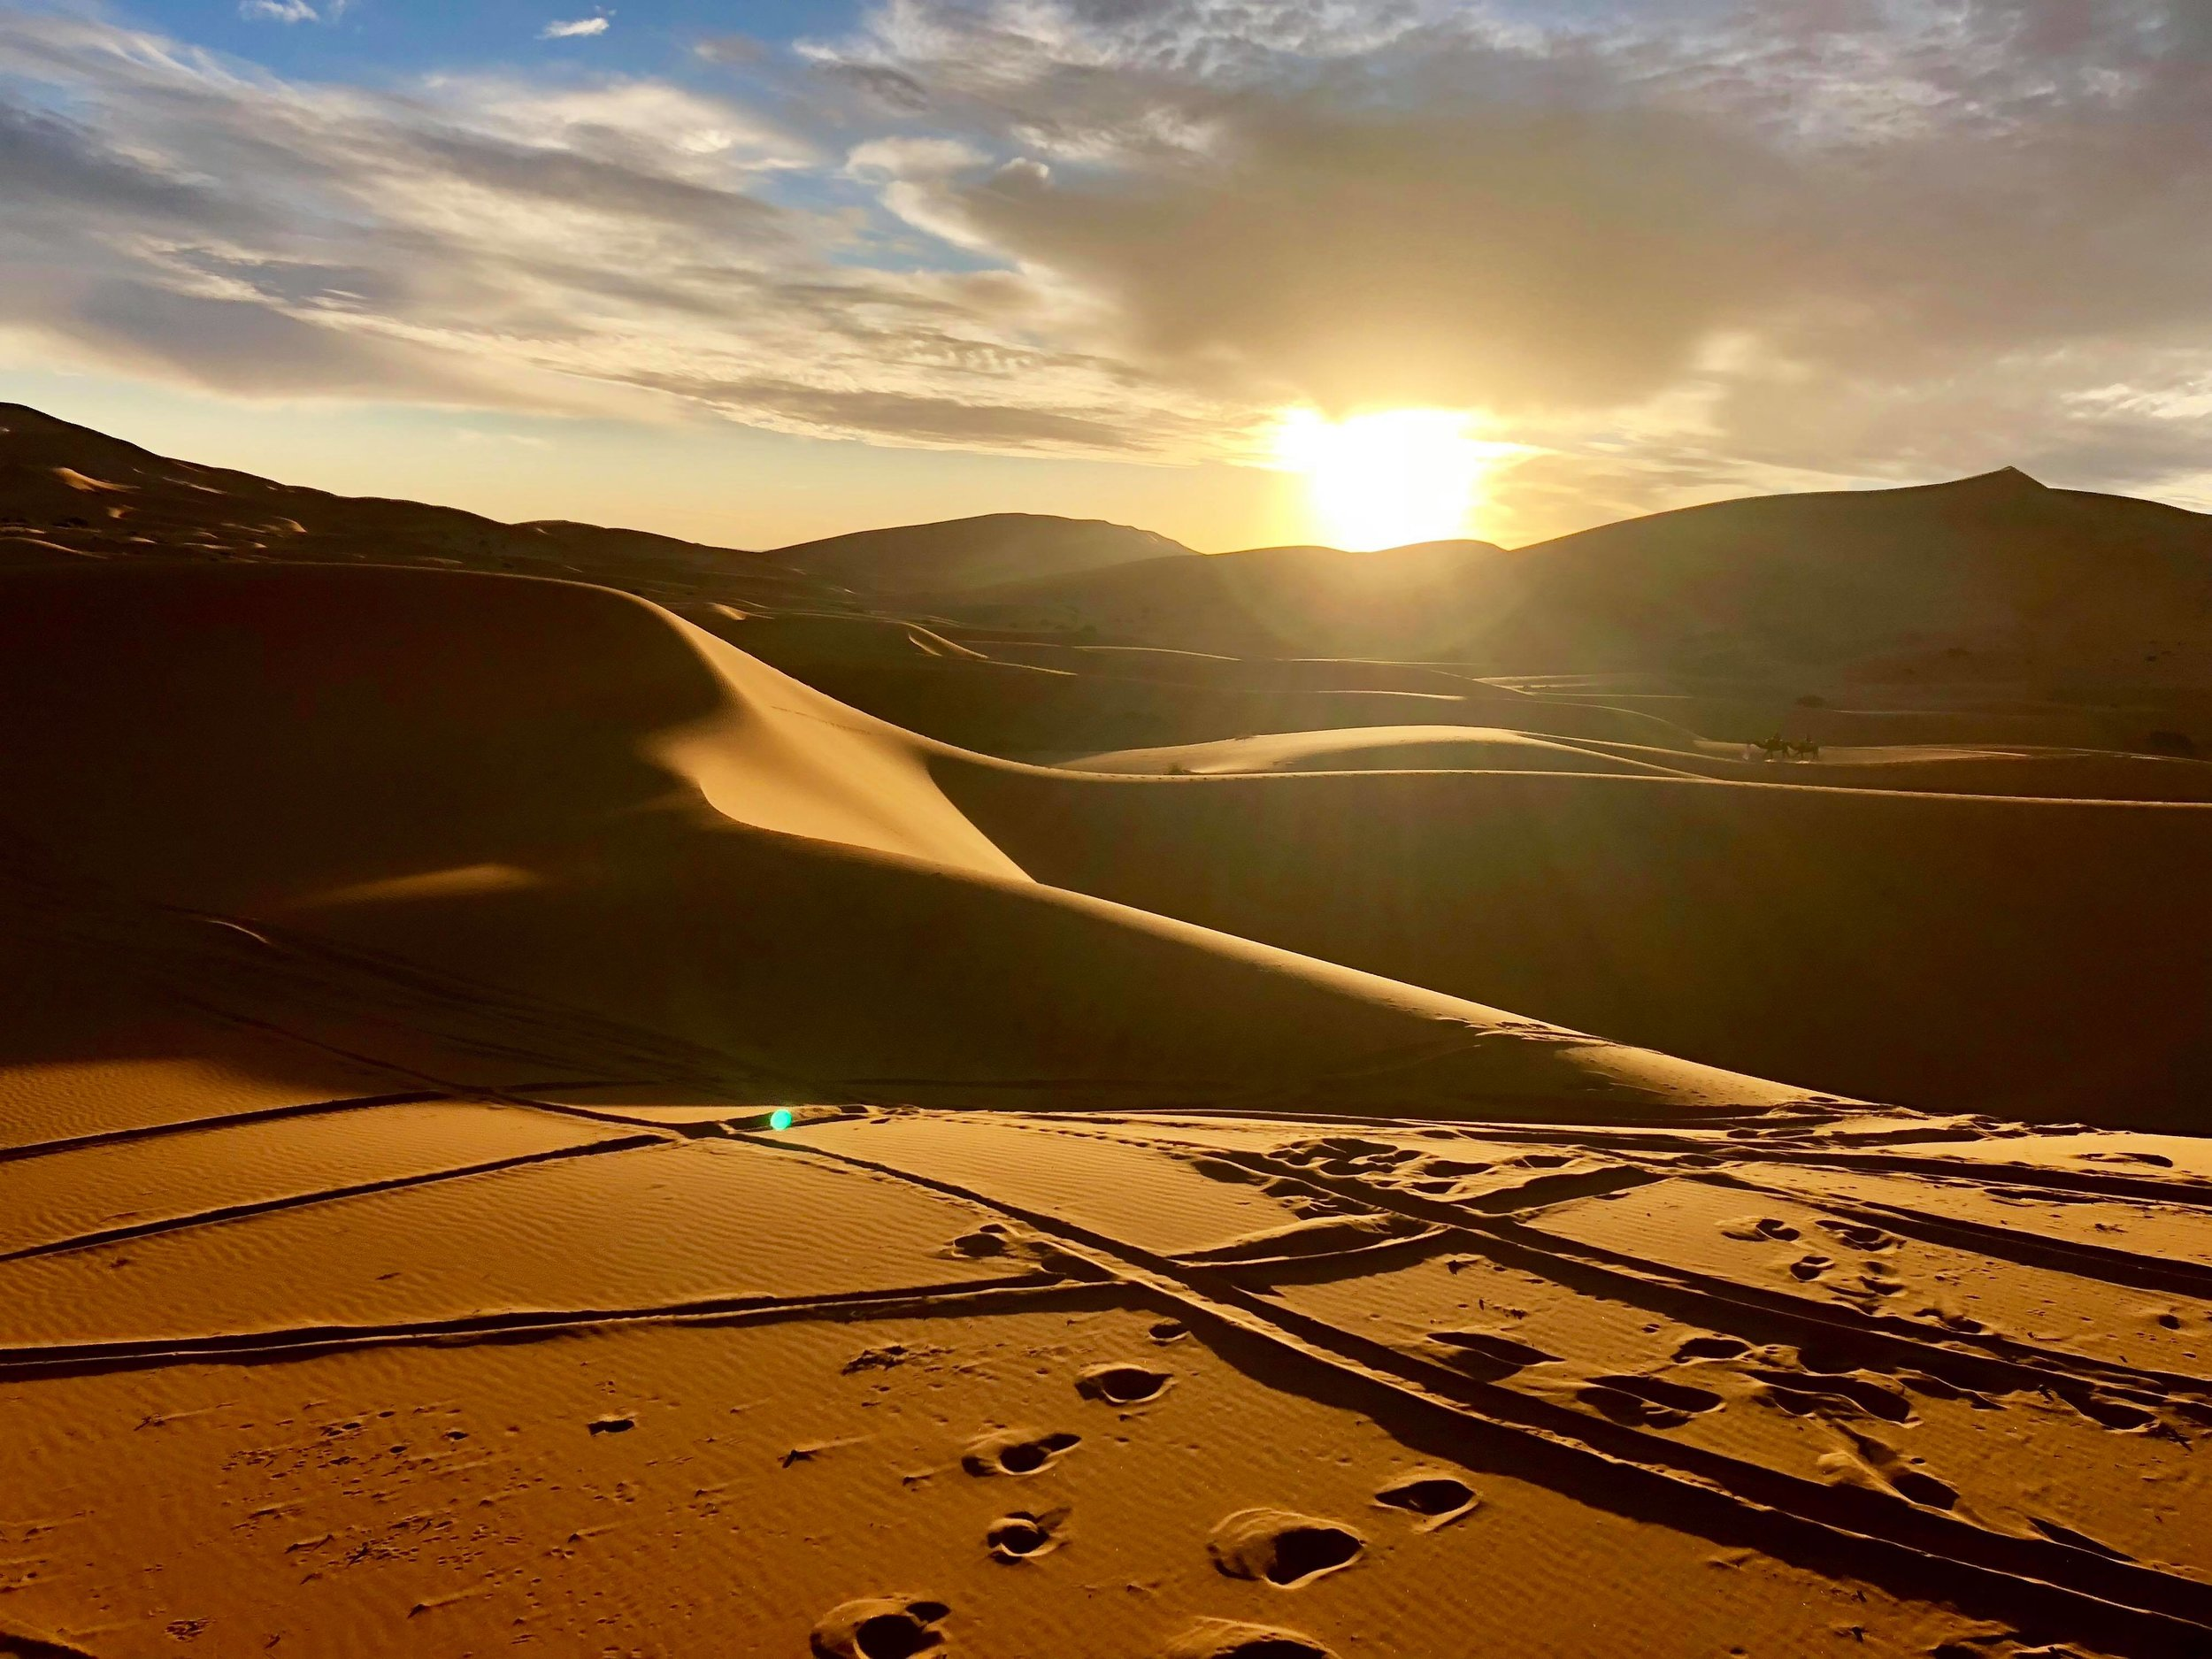 Traditionally a nomadic people. today the Berbers make up the majority of the population that inhabit the Sahara.